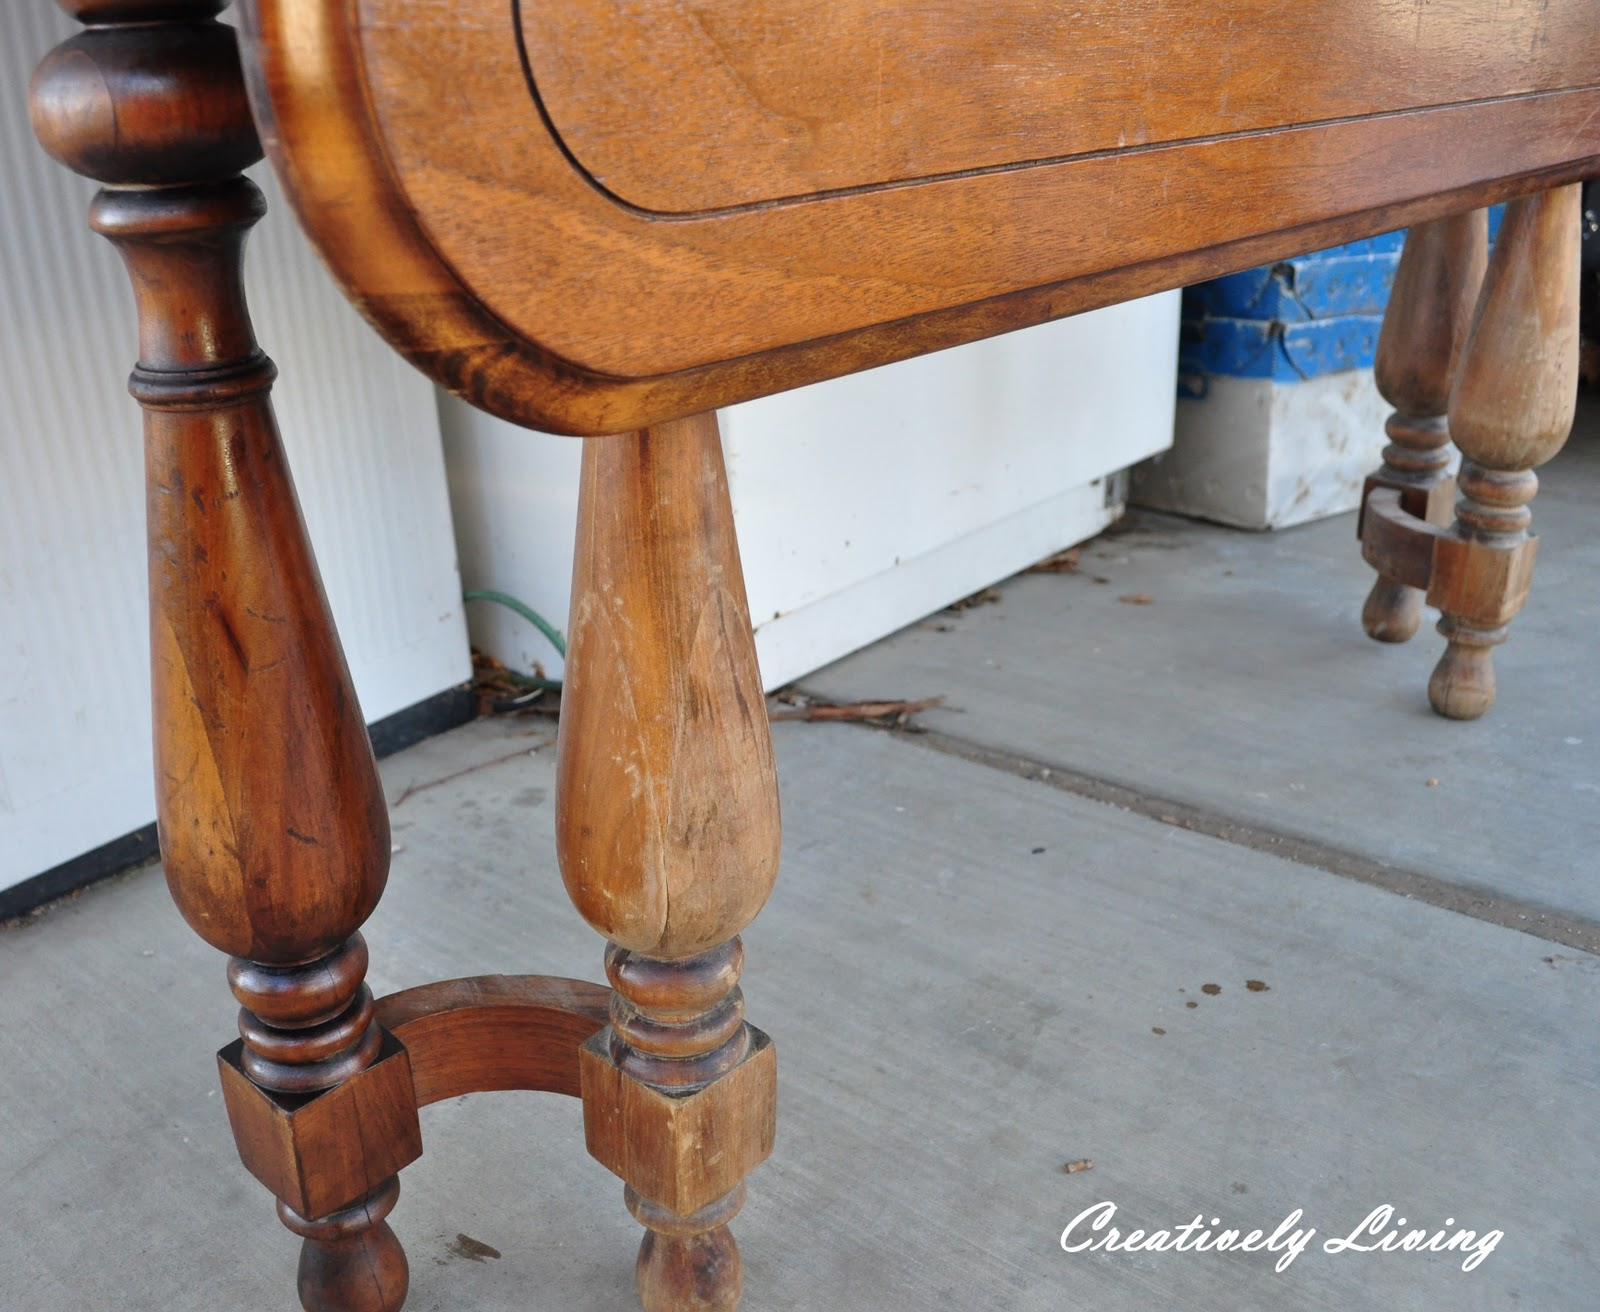 how to refinish a table in 1 hour quick refinishing class 1 - How To Refinish Wood Table